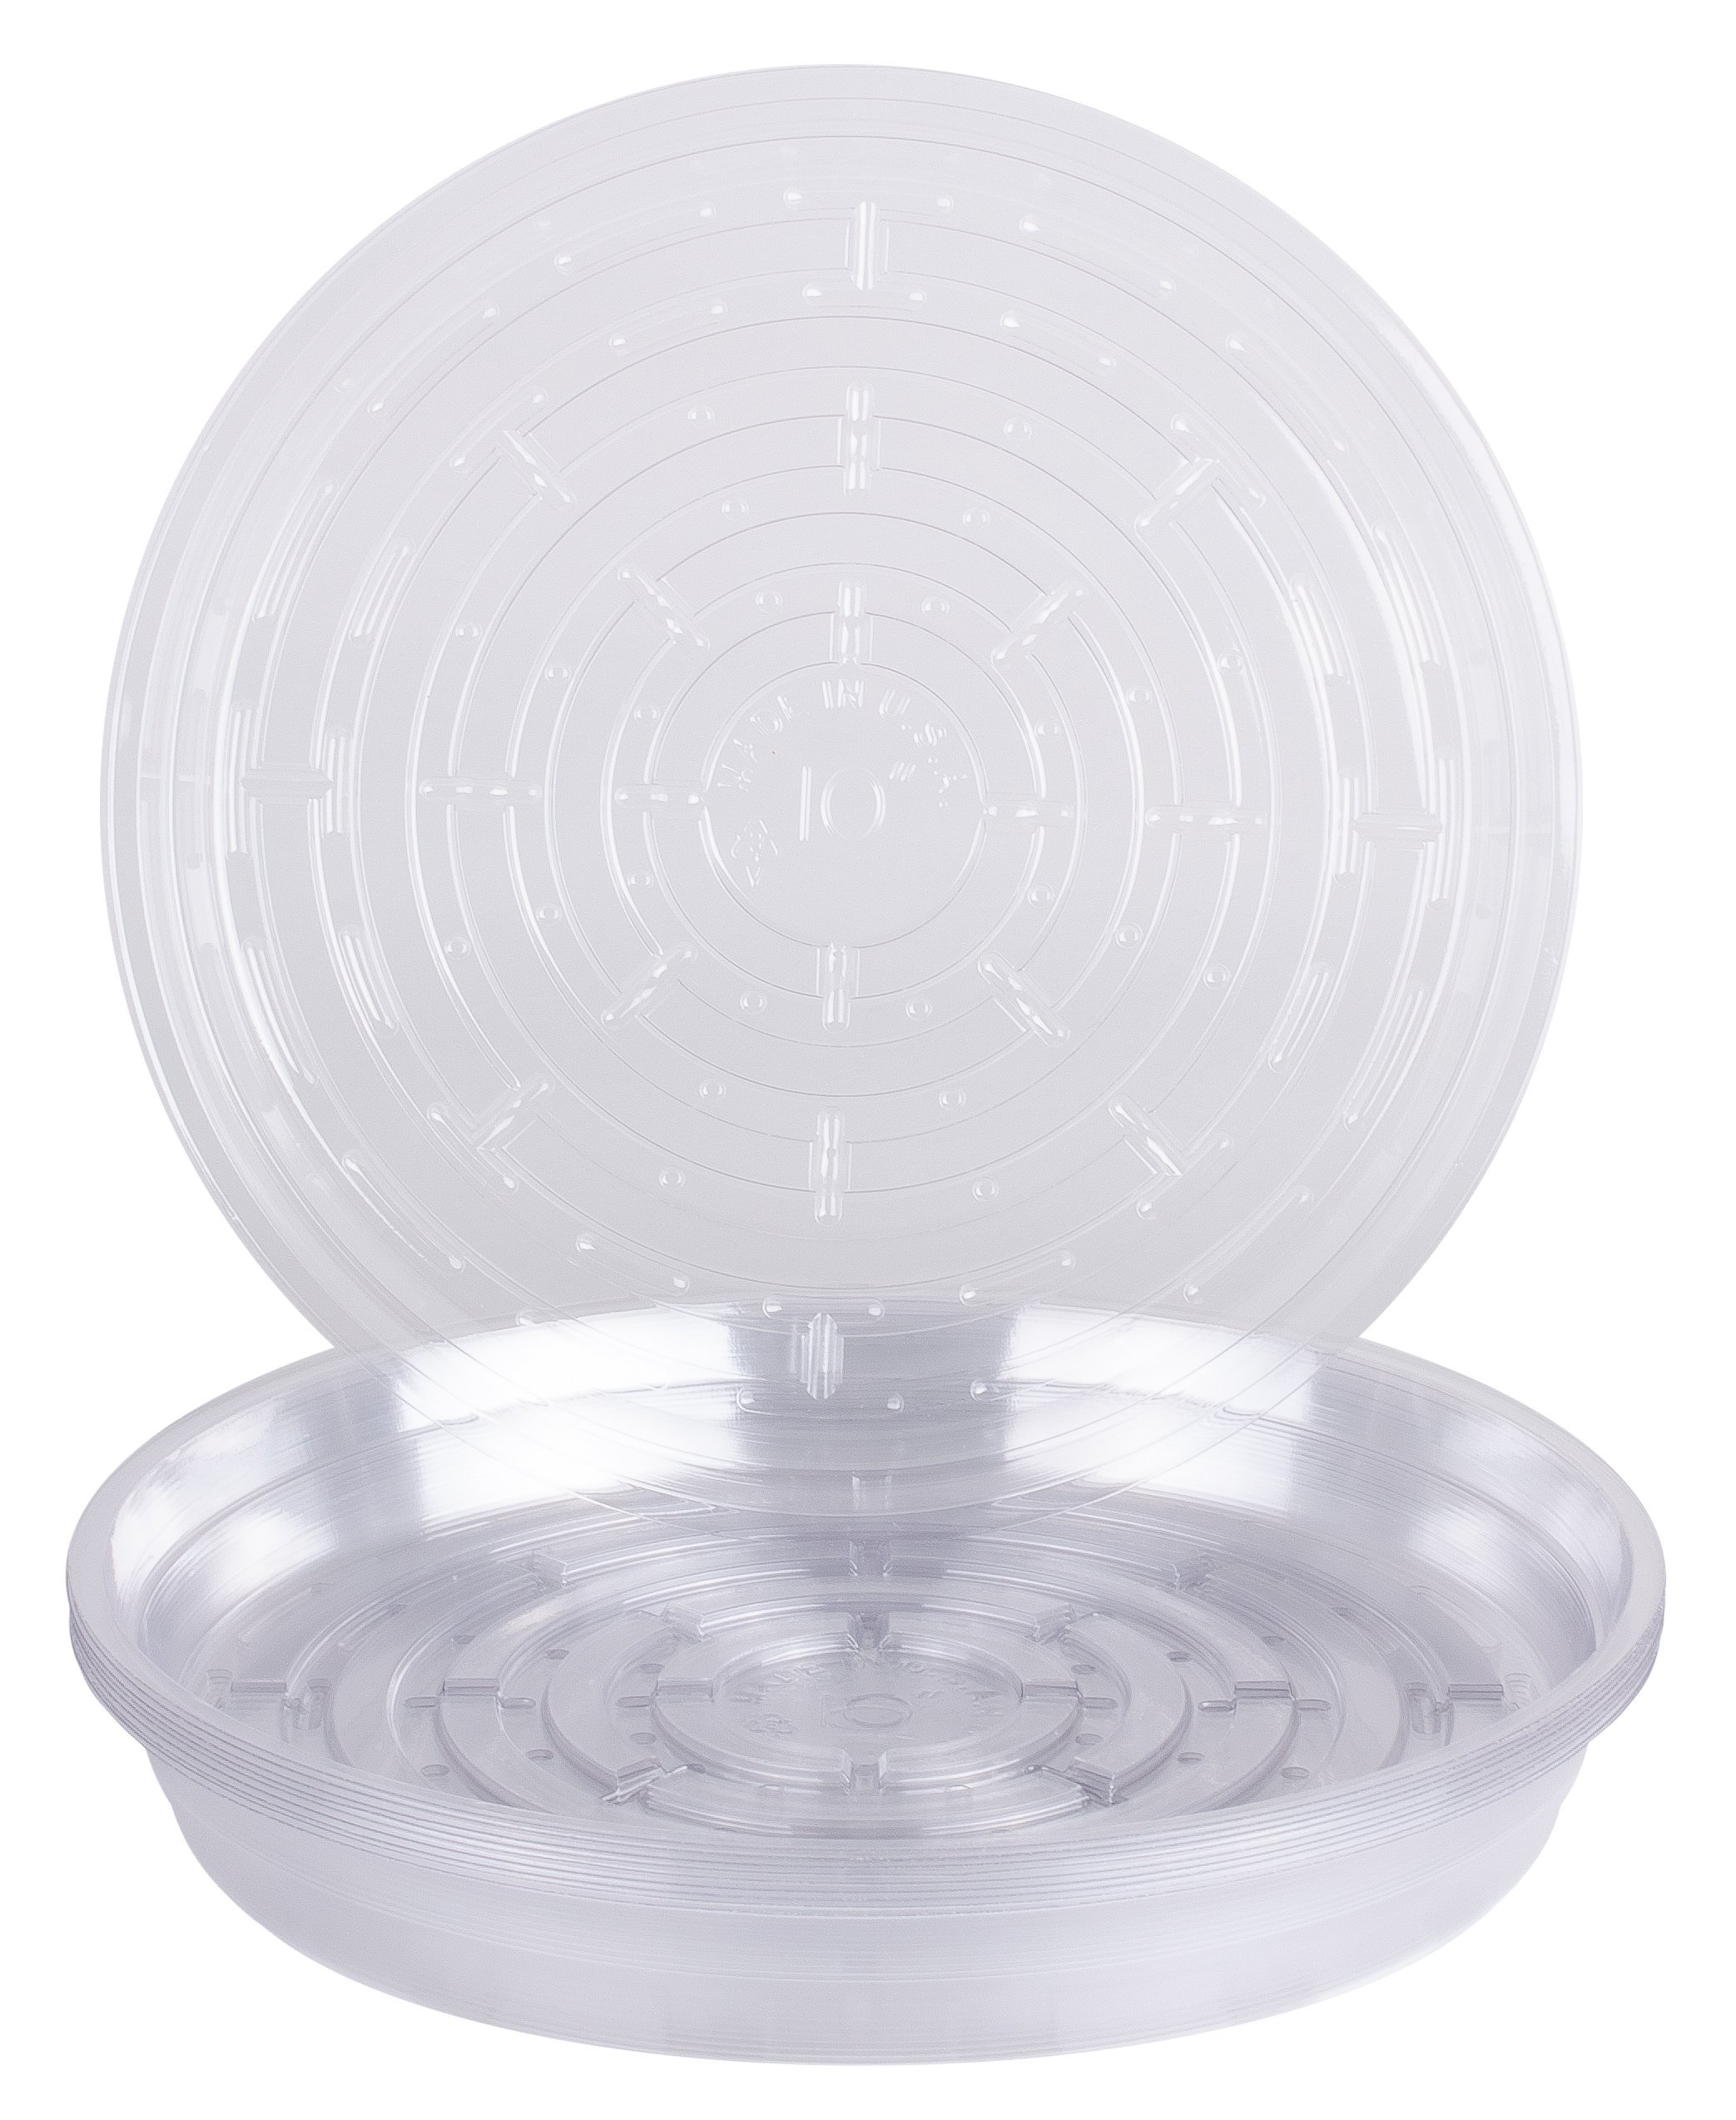 Curtis Wagner Round Clear Vinyl Plant Saucer, Pack of 10